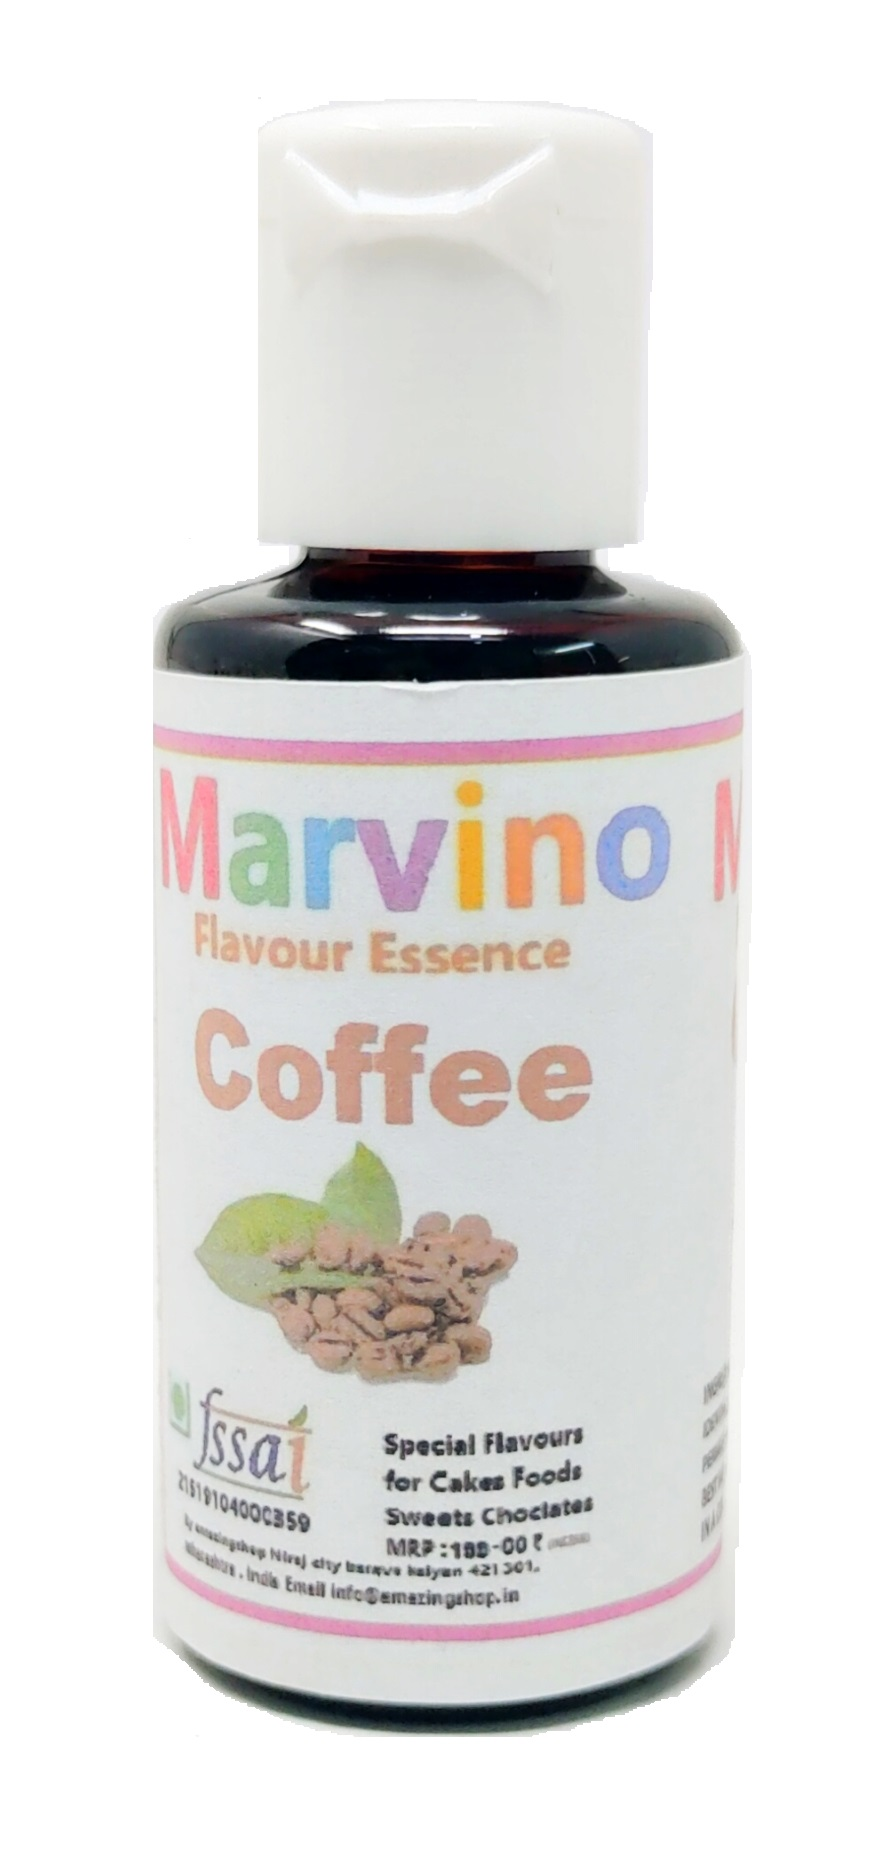 Marvino 12 Just Arrived Flavour Essence Extracts For Flavouring Cakes Sweets Choclates Icecreams And Shakes